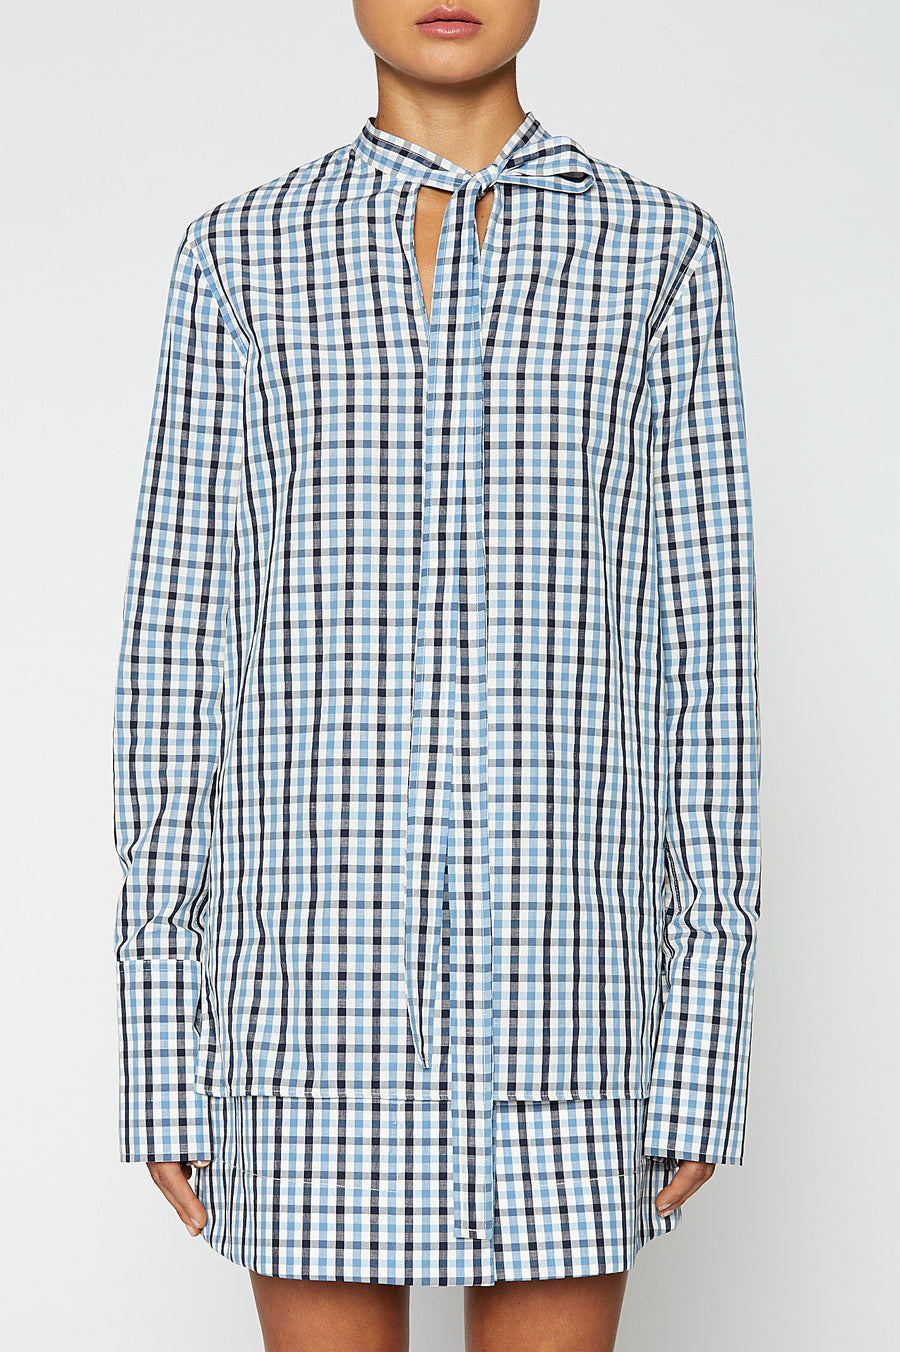 GINGHAM TIE NECK SHIRT, BLUE color